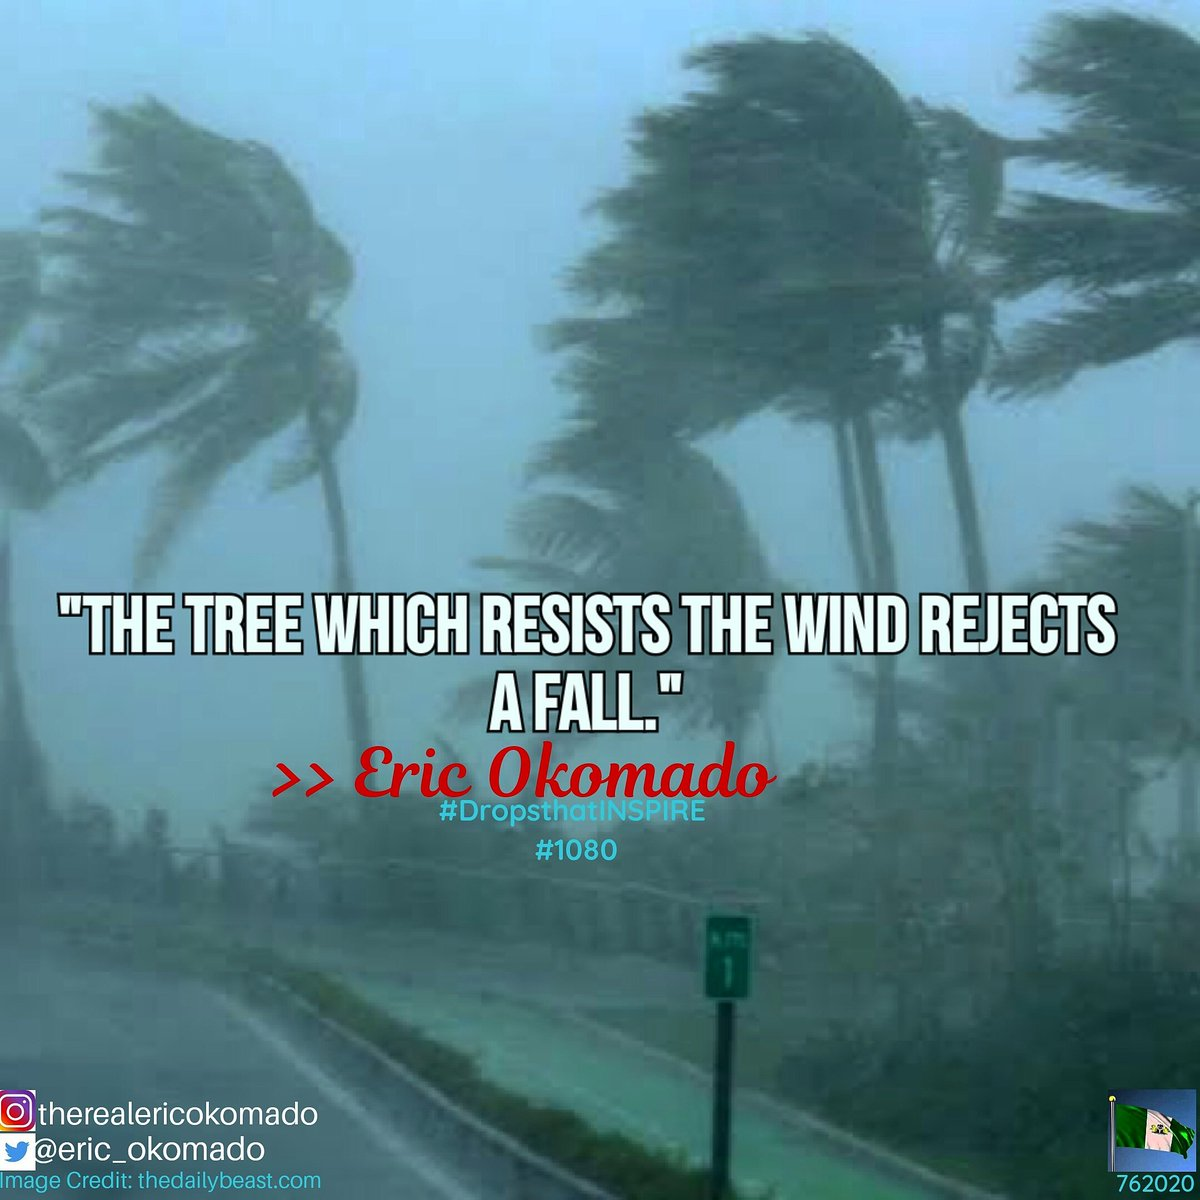 Stand firm; Be determined to resist all the forces bent on bringing you down.  #DropsthatINSPIRE #BeINSPIREDtoday  #MondayMotivaton #success #trees #COVID19 #life #mondaythoughts #friends #ThinkBIGSundayWithMarsha #lasisi #bend #writersofinstagram #f4f #follow4followback https://t.co/j8Ig097Lzq